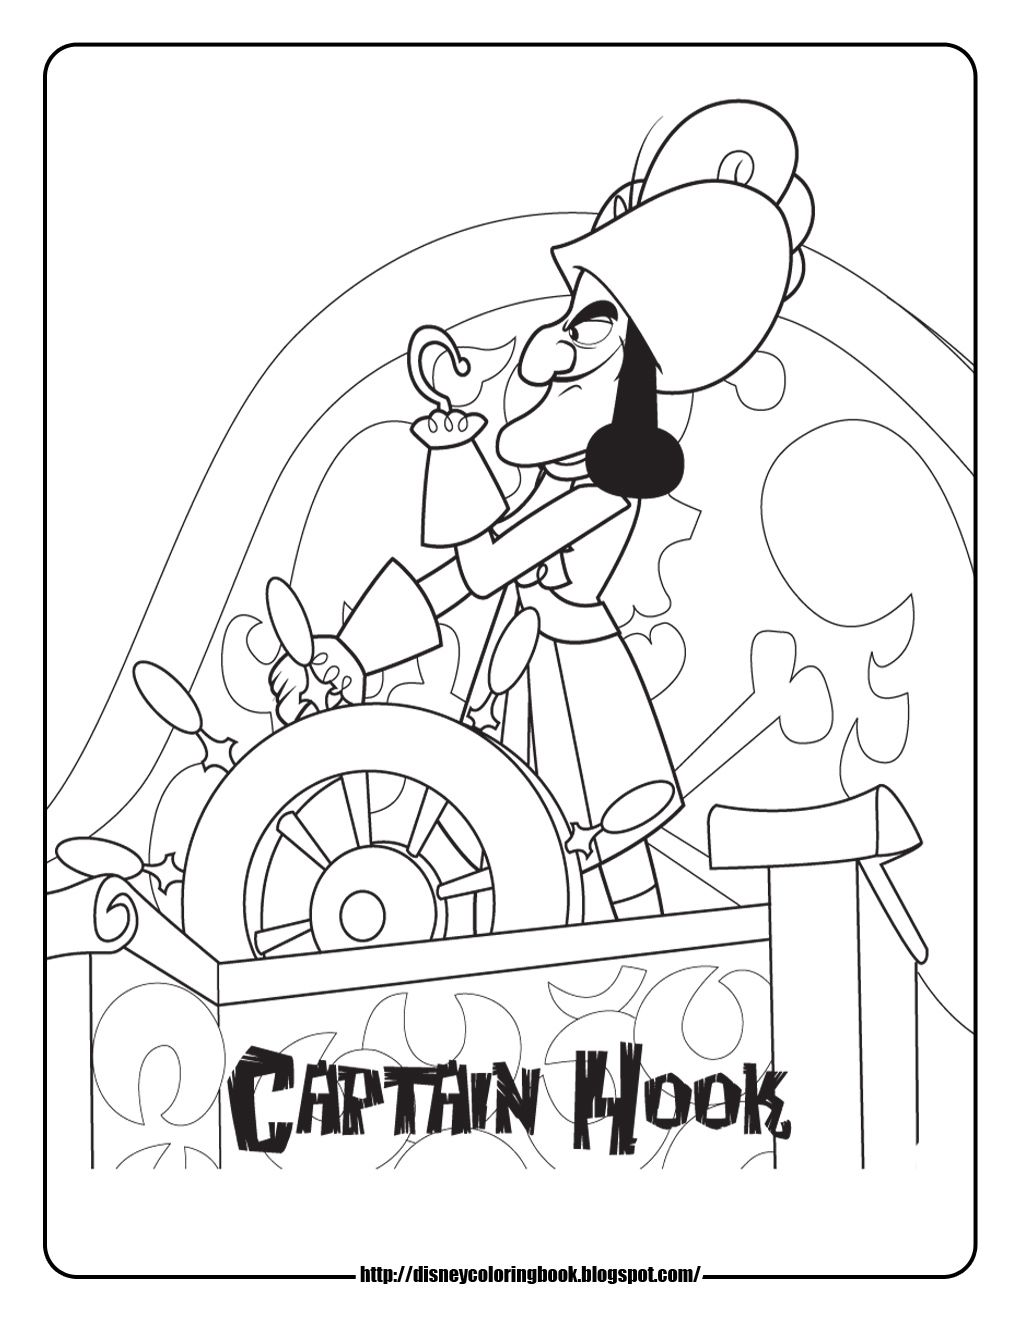 disney coloring pages and sheets for kids: jake and the neverland ... - Disney Jr Coloring Pages Print